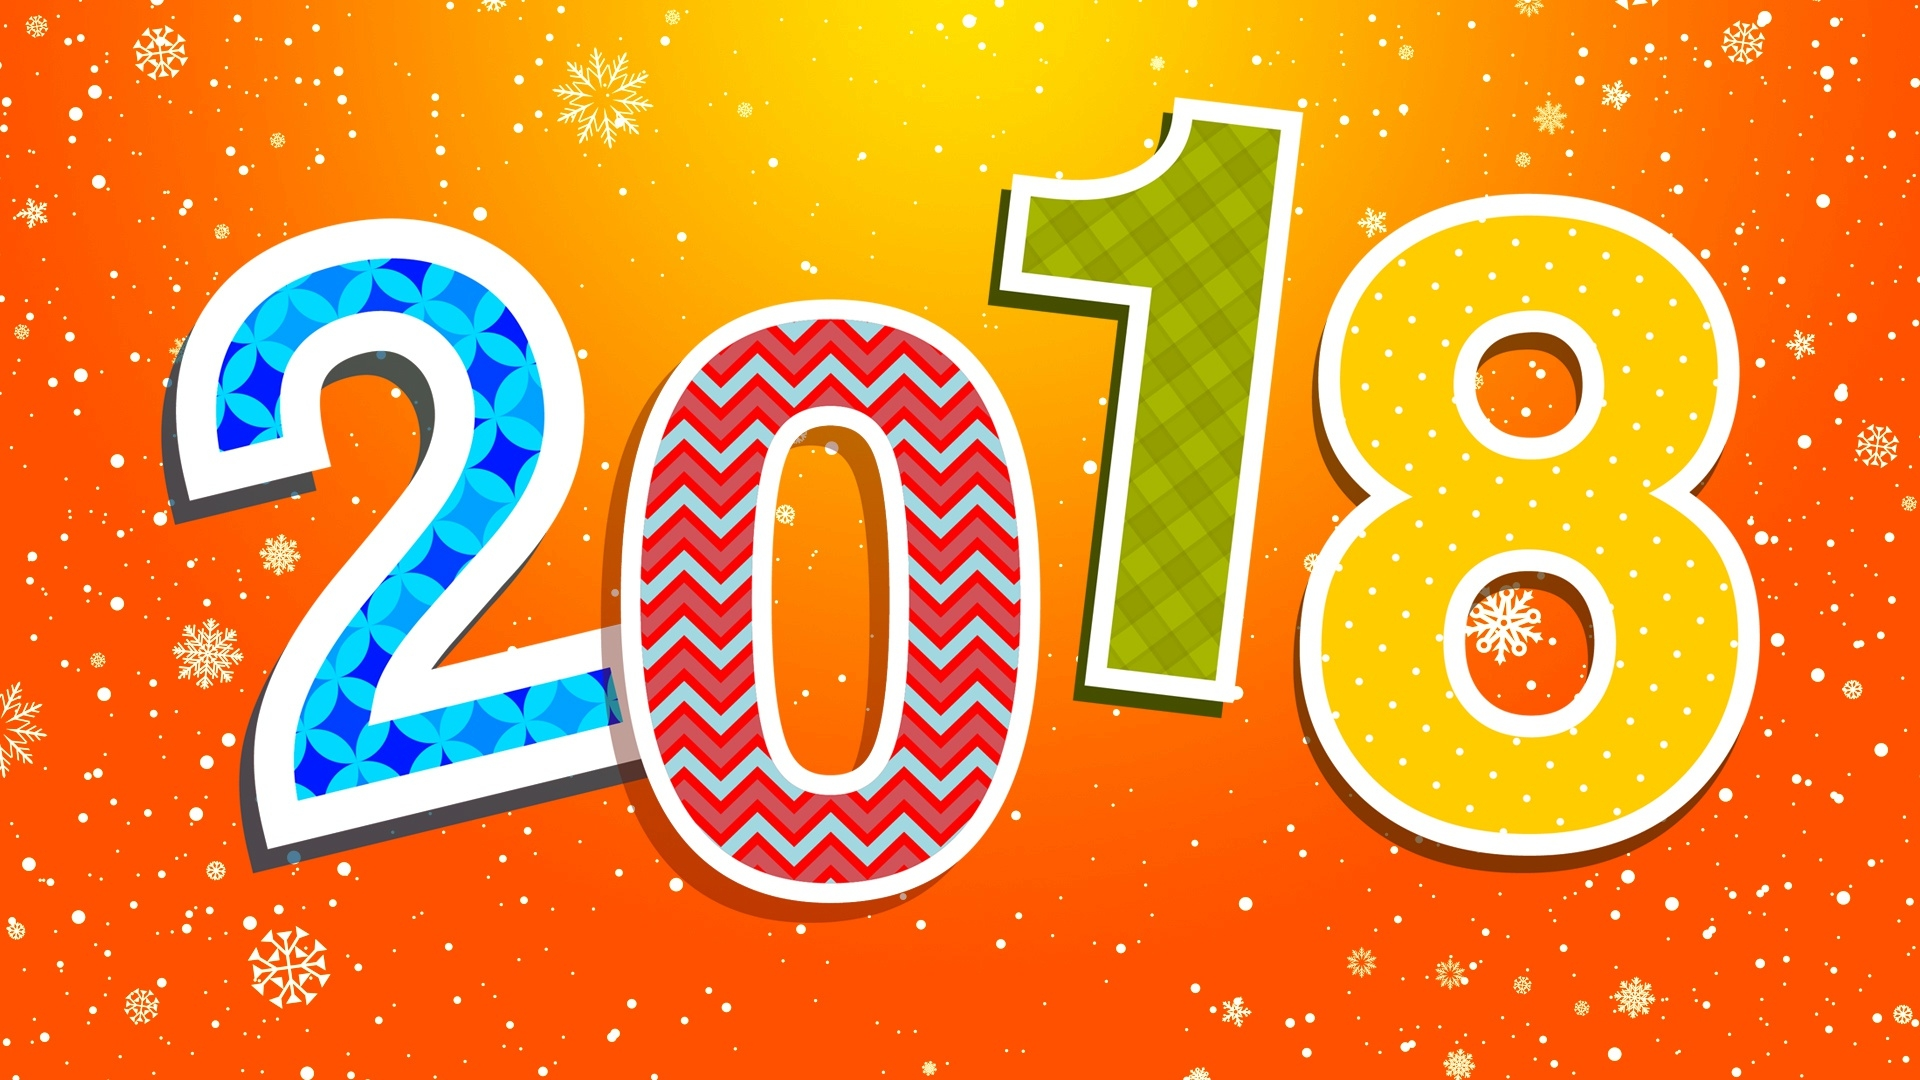 Sweet 3d Hd Wallpaper 2018 Colorful New Year Hd Background Wallpaper 1920x1080